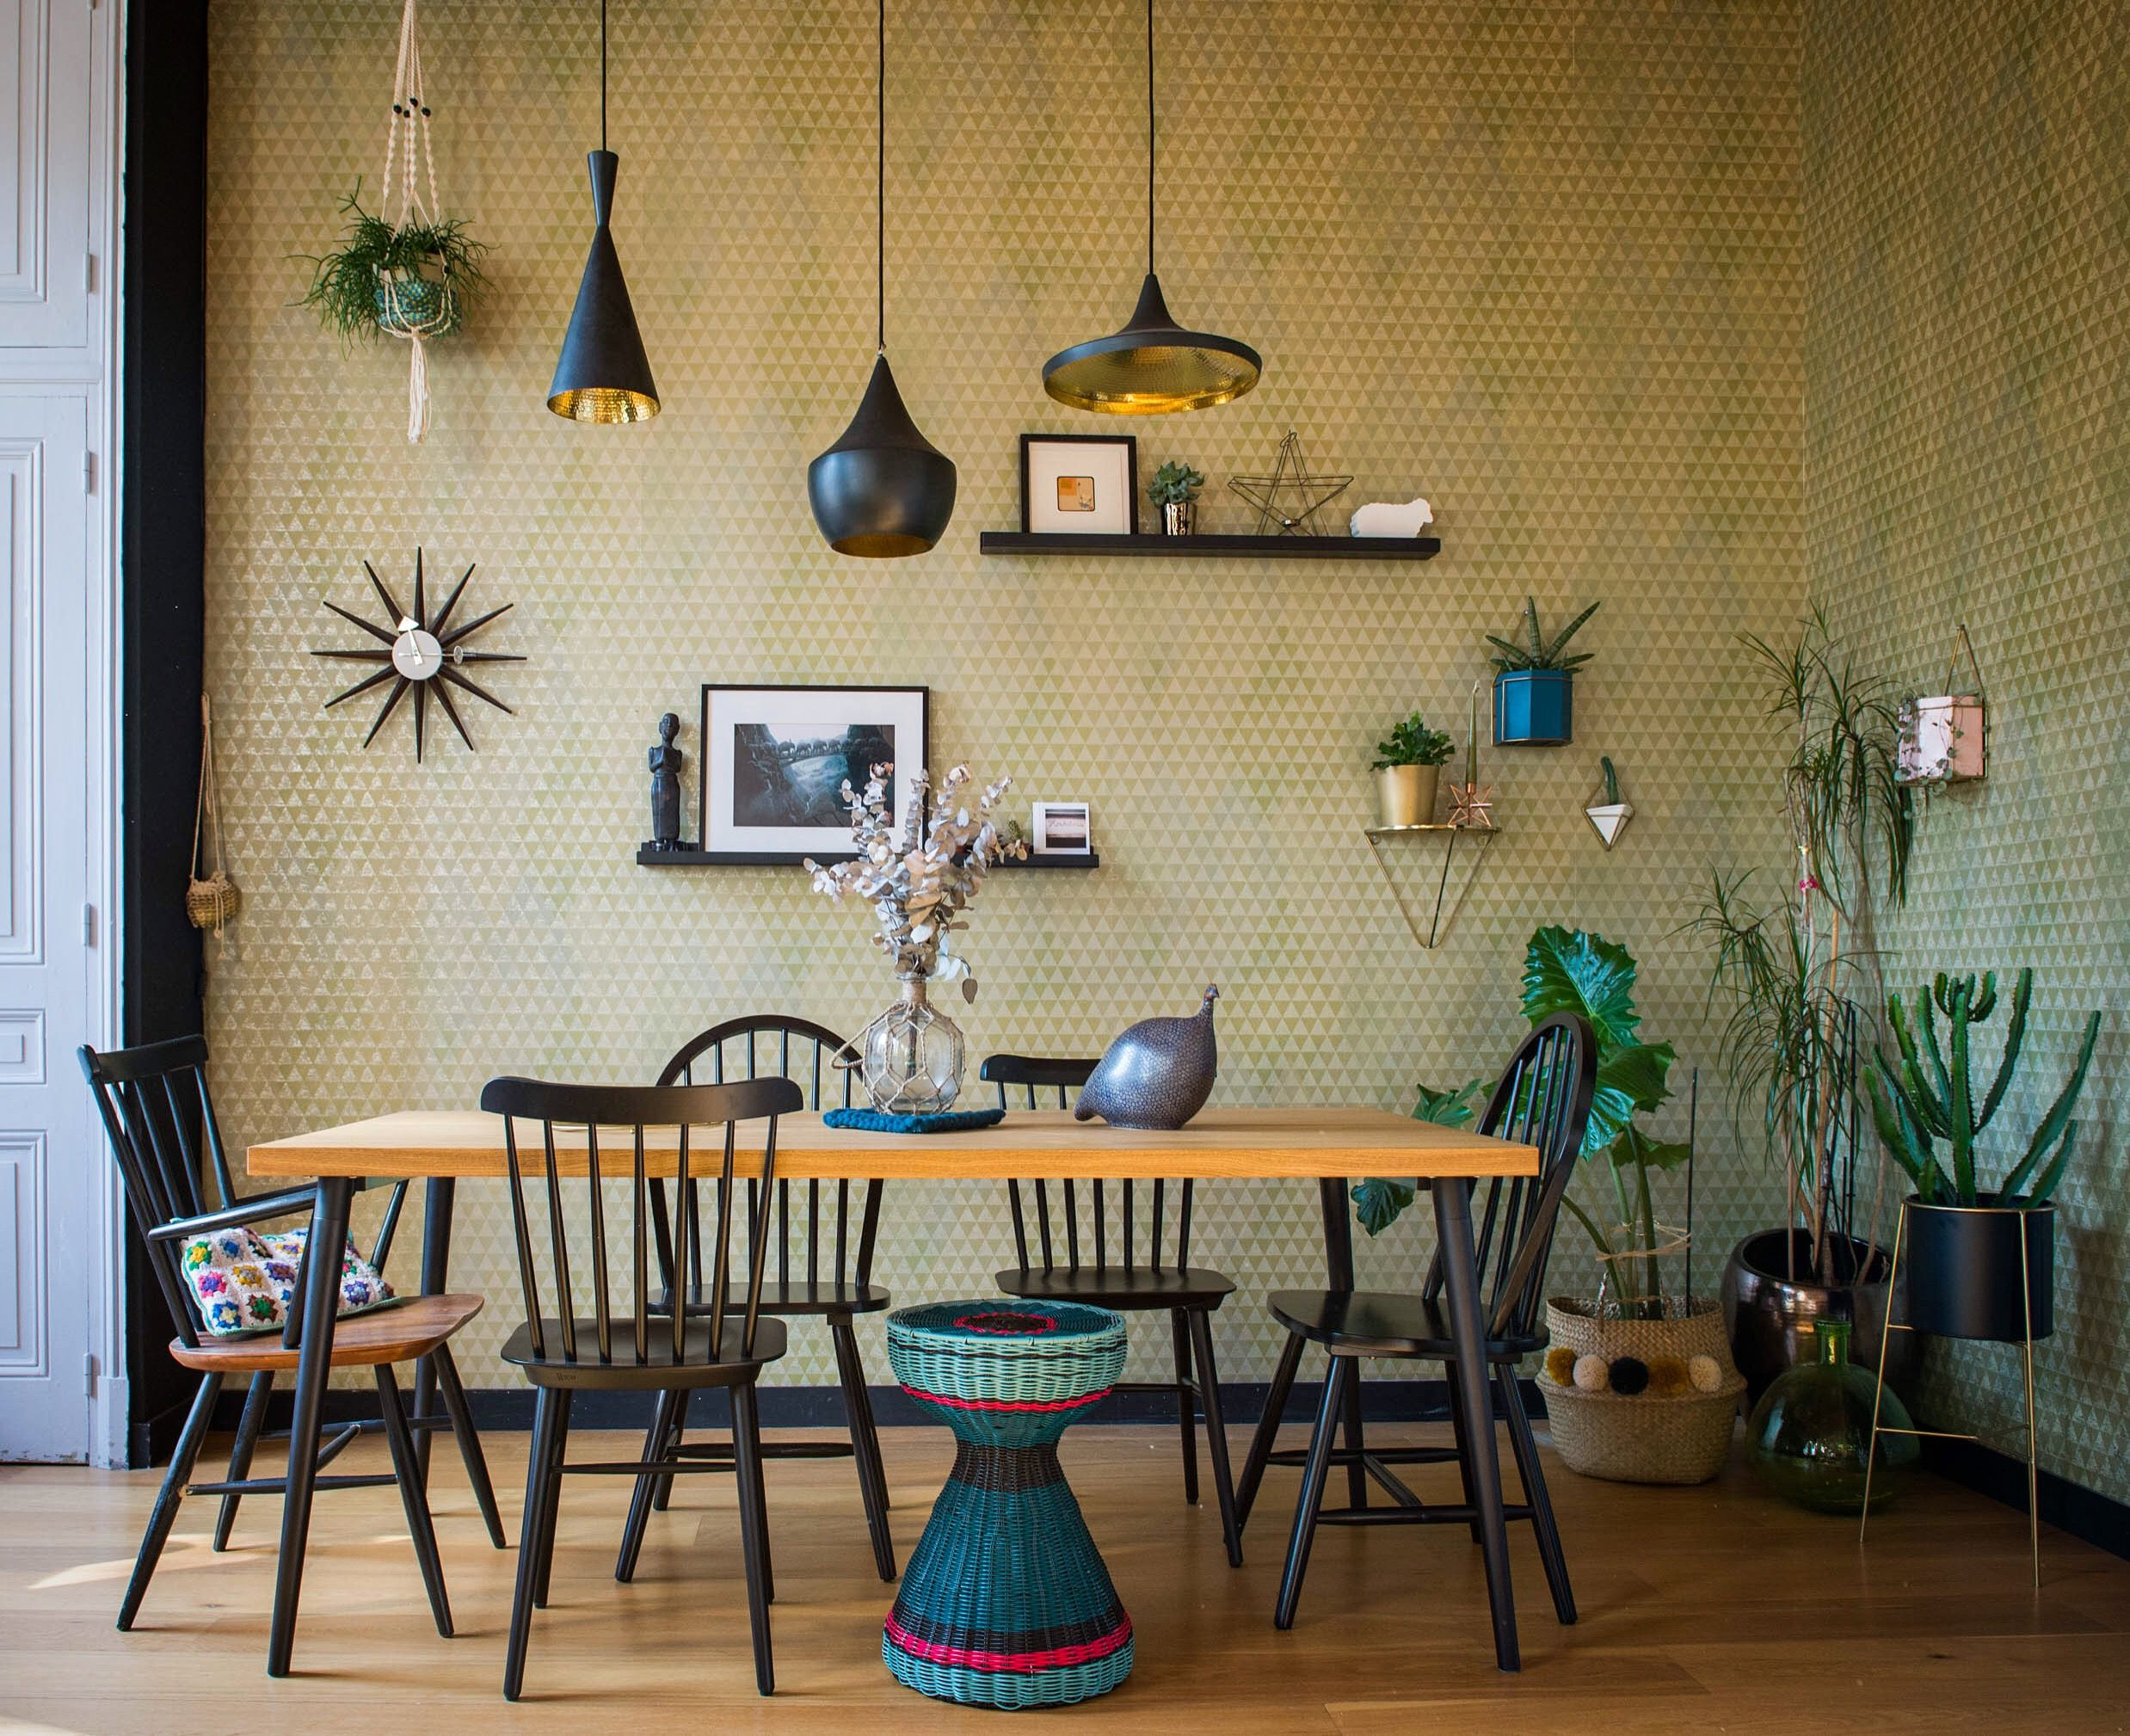 Glam esszimmer dekor a mix of boho country and glamor  stephanies dining room with a